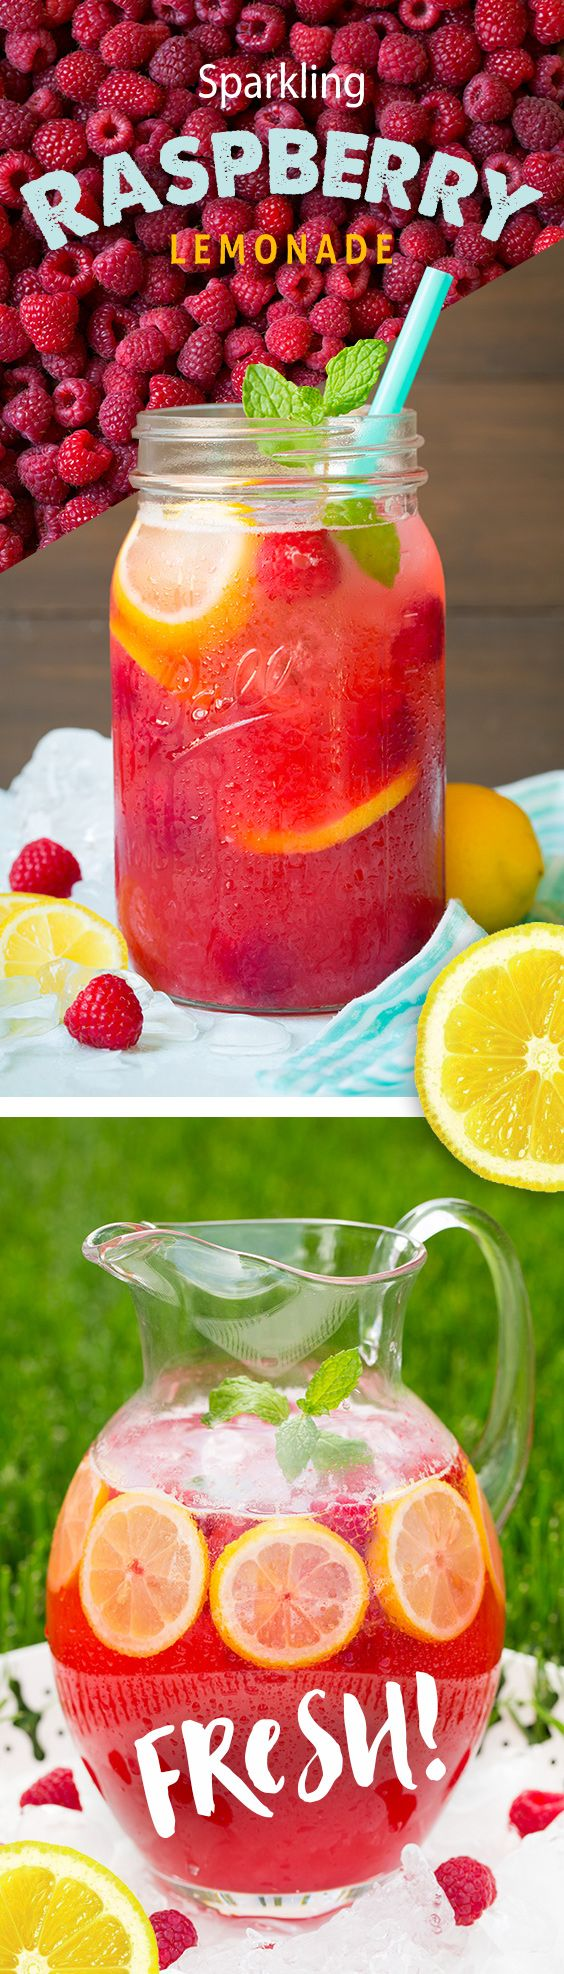 Aug_Cooking-Classy_Pin_Raspberrry_lemonade (1) Come and see our new website at bakedcomfortfood.com!